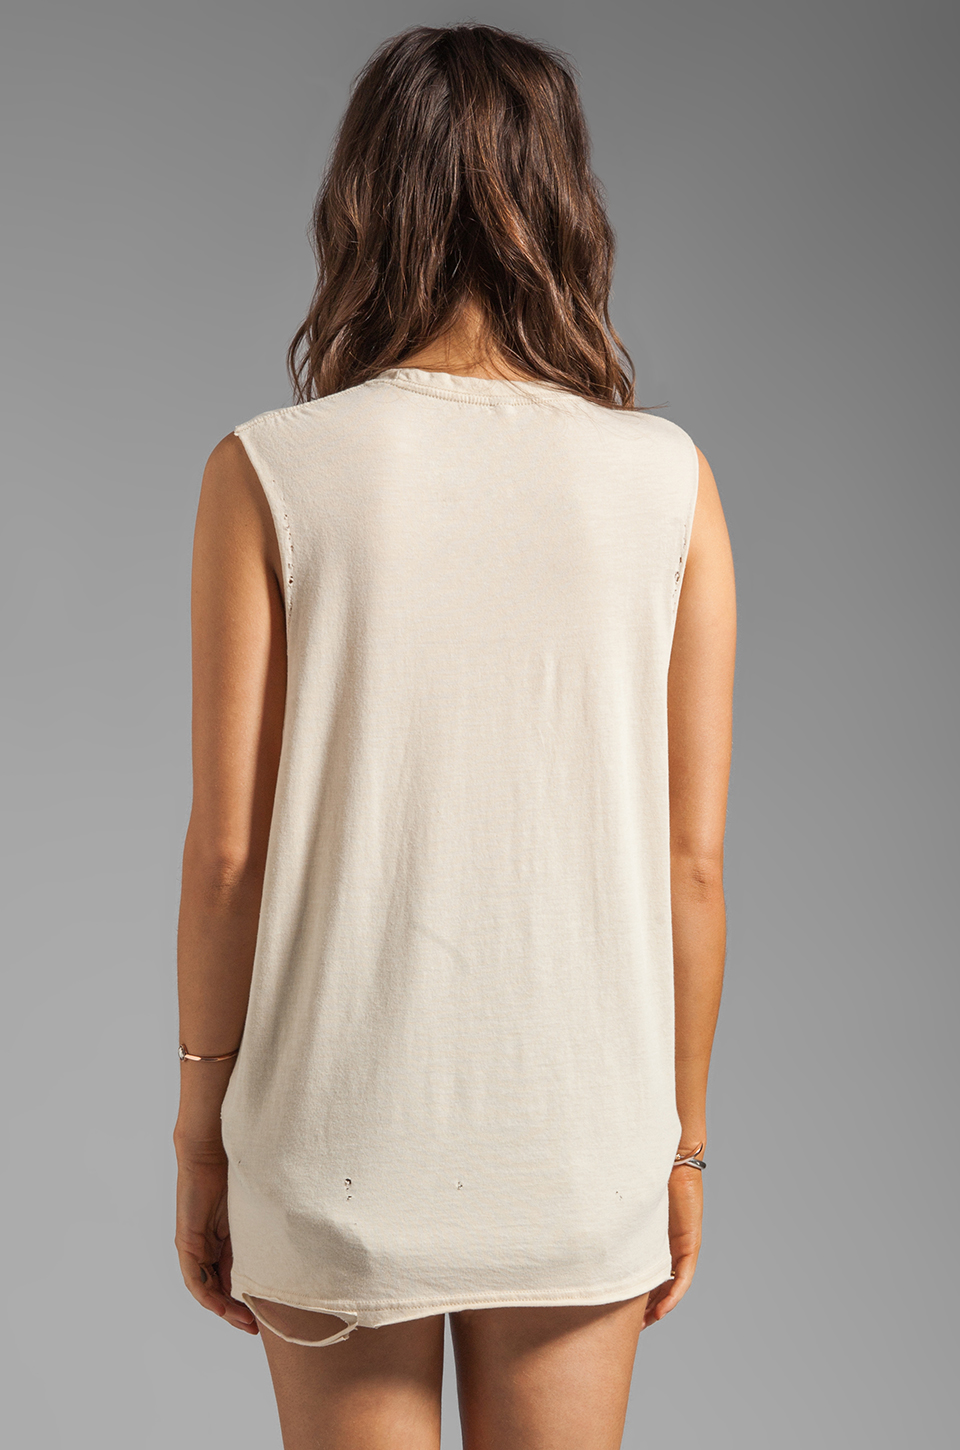 The Laundry Room Cal+fornia Lace Thrasher Muscle Tee in Nude